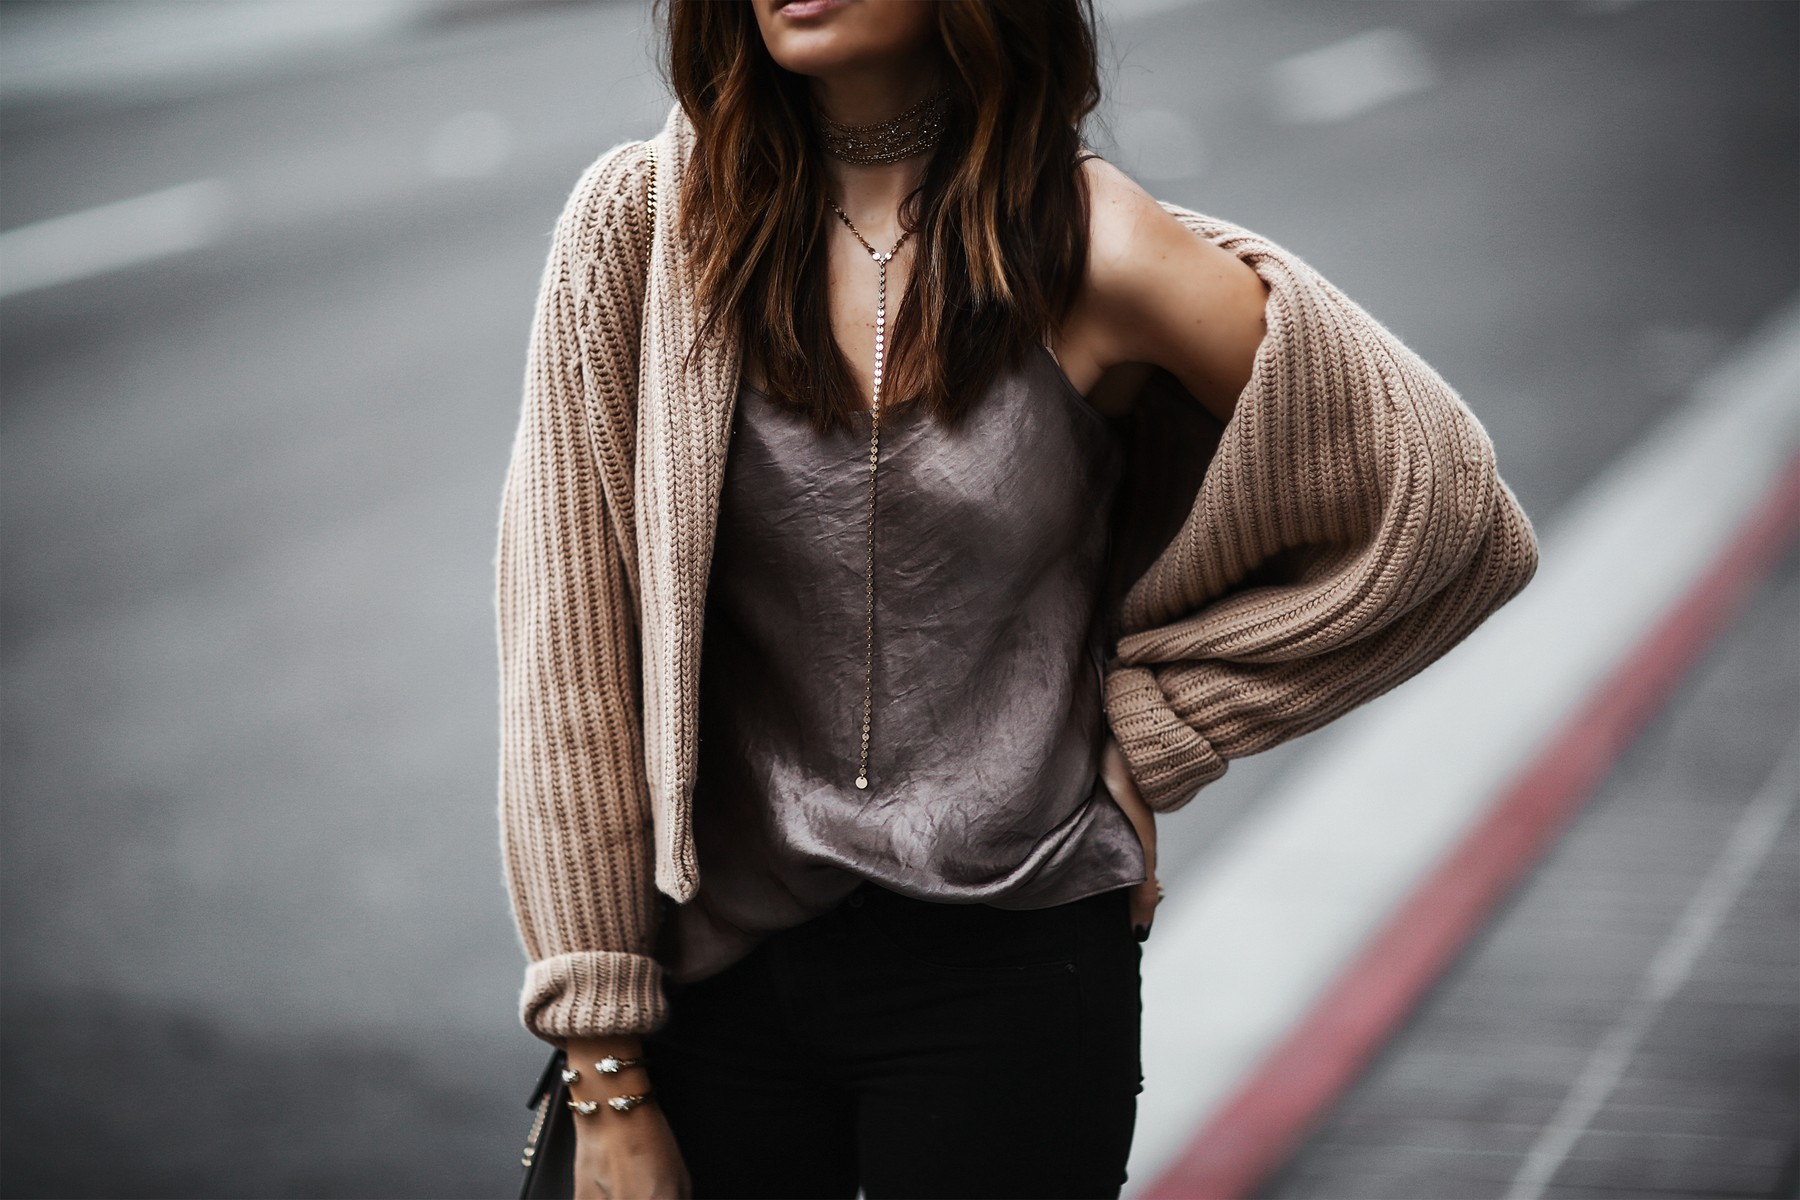 layered necklaces and winter layers